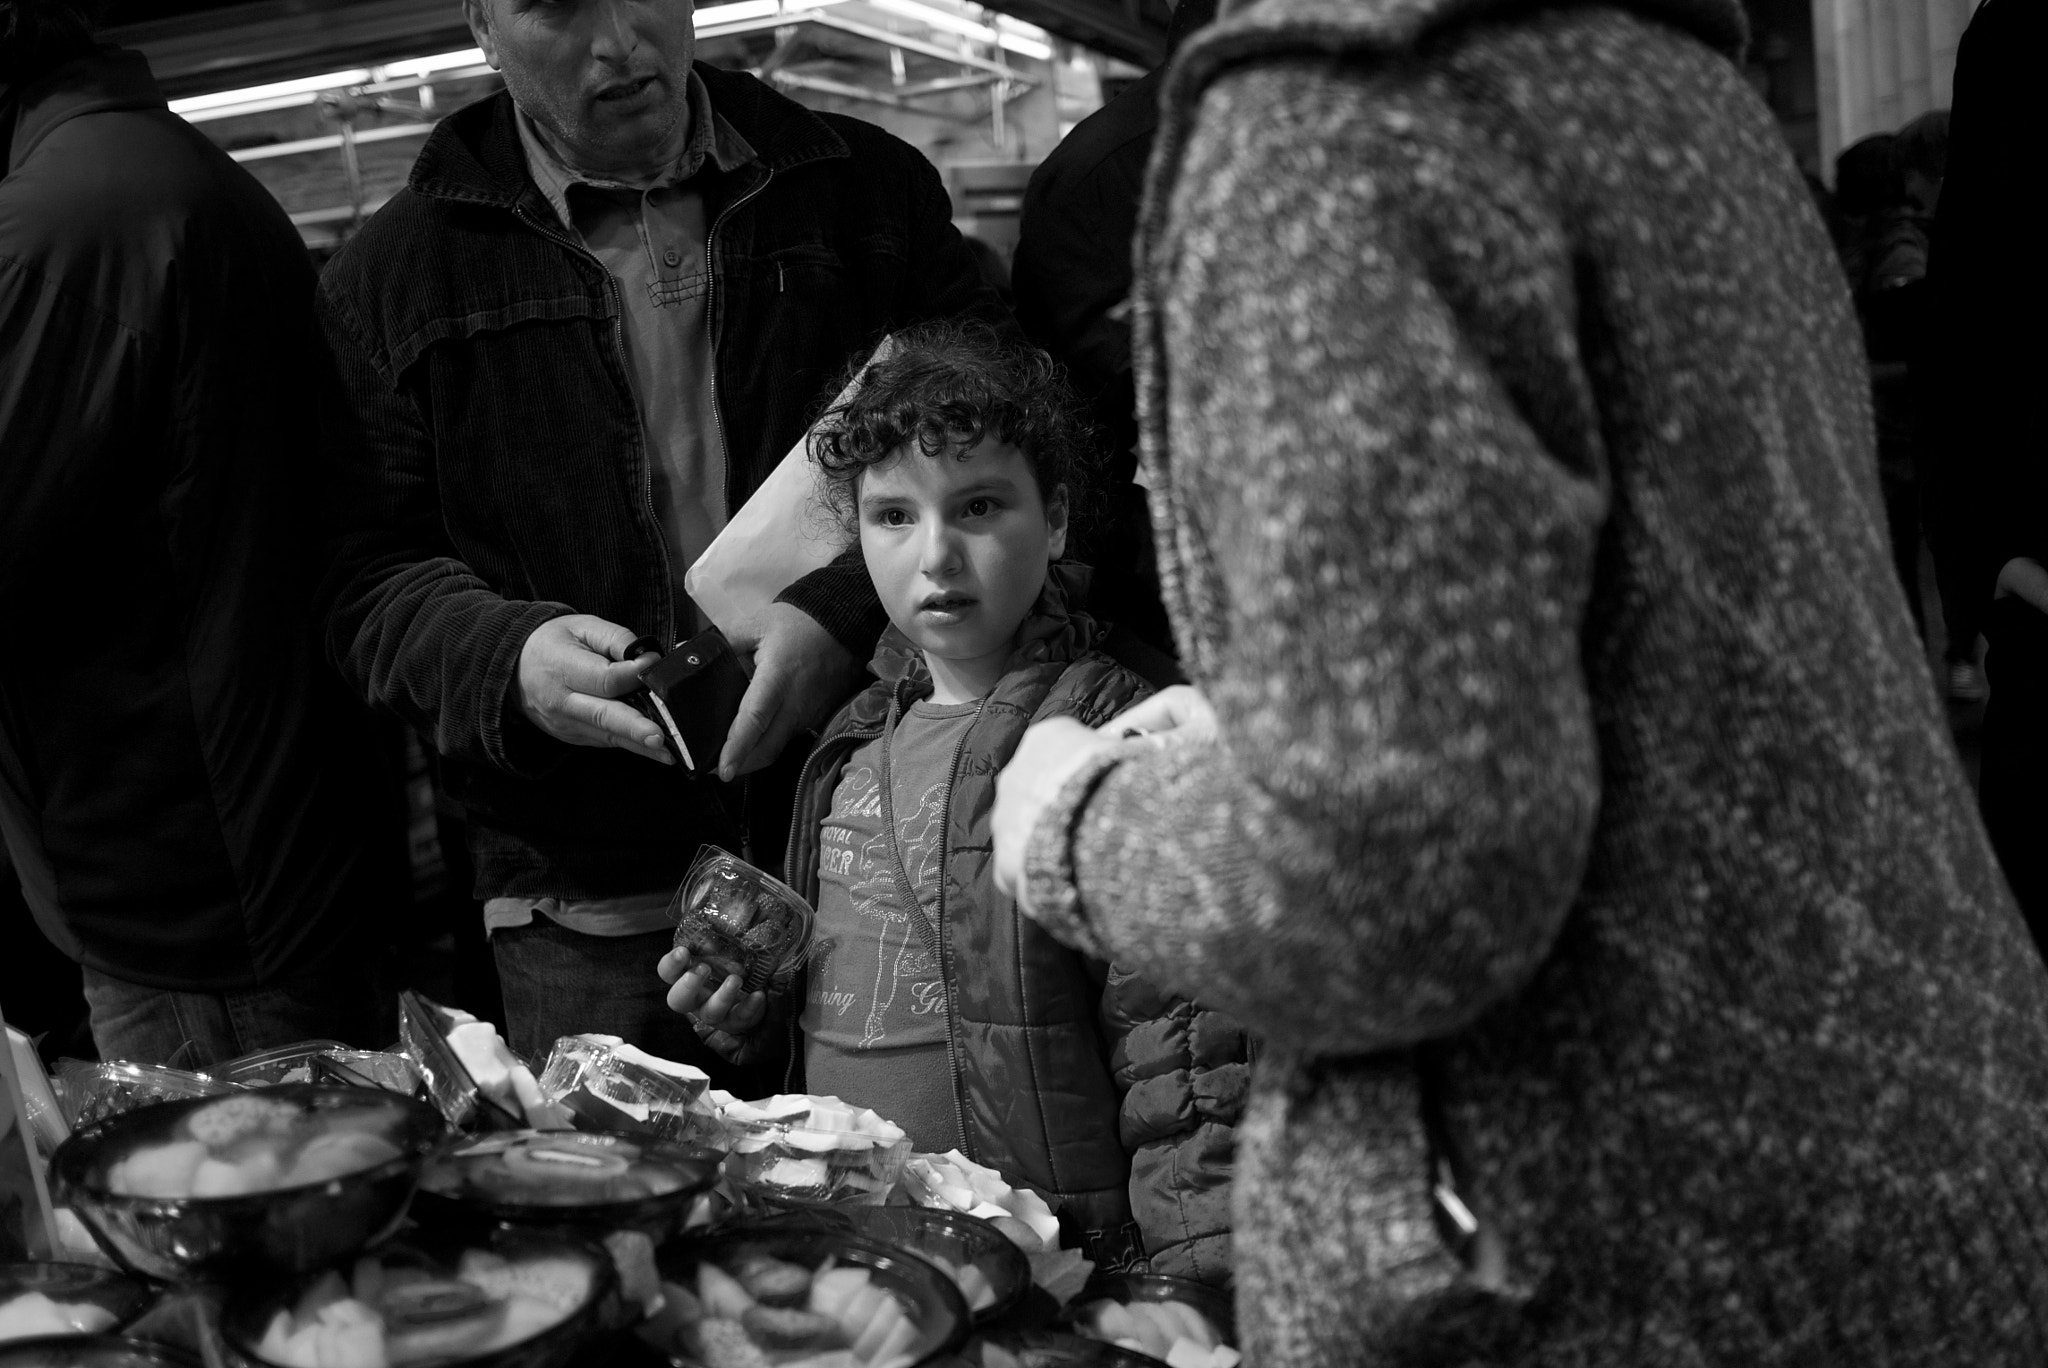 Photograph Gazes at the Boquería Market, I by Eduardo Páramo on 500px